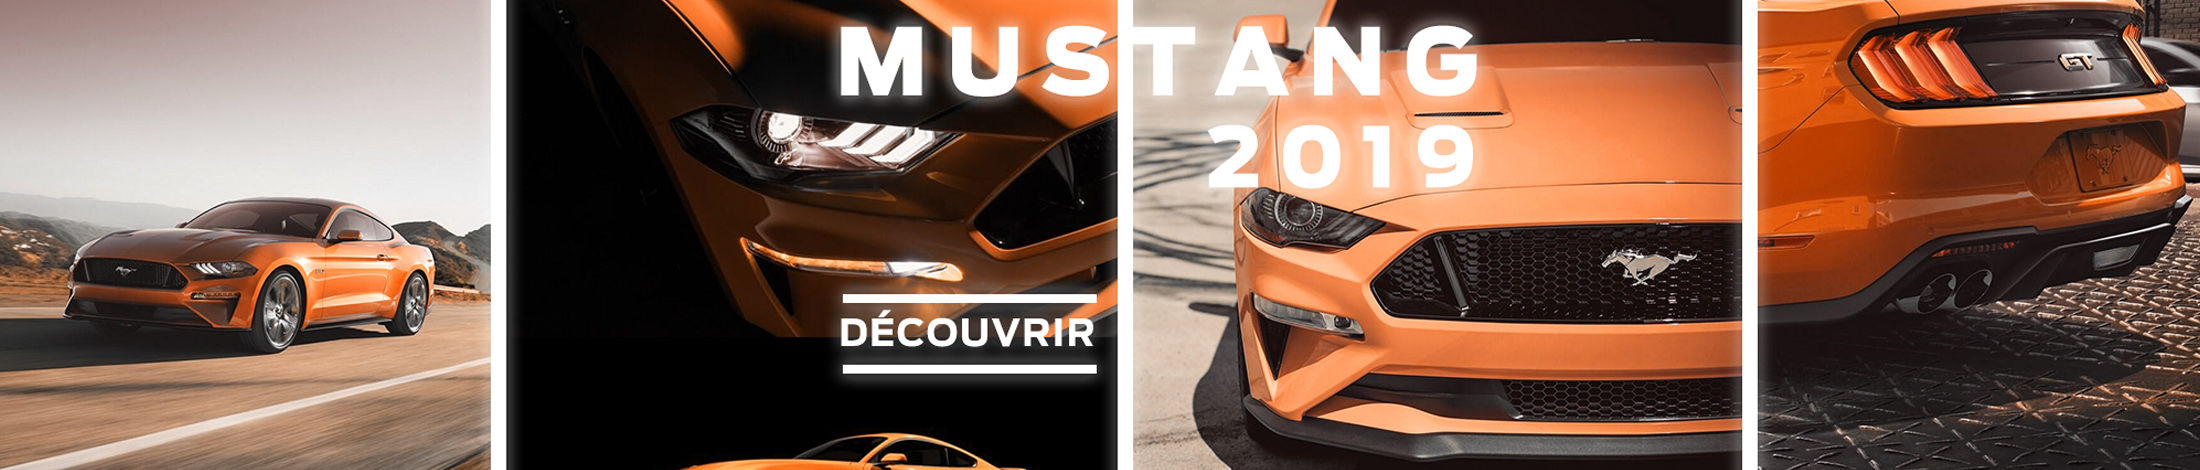 Mustang 2019 Ford